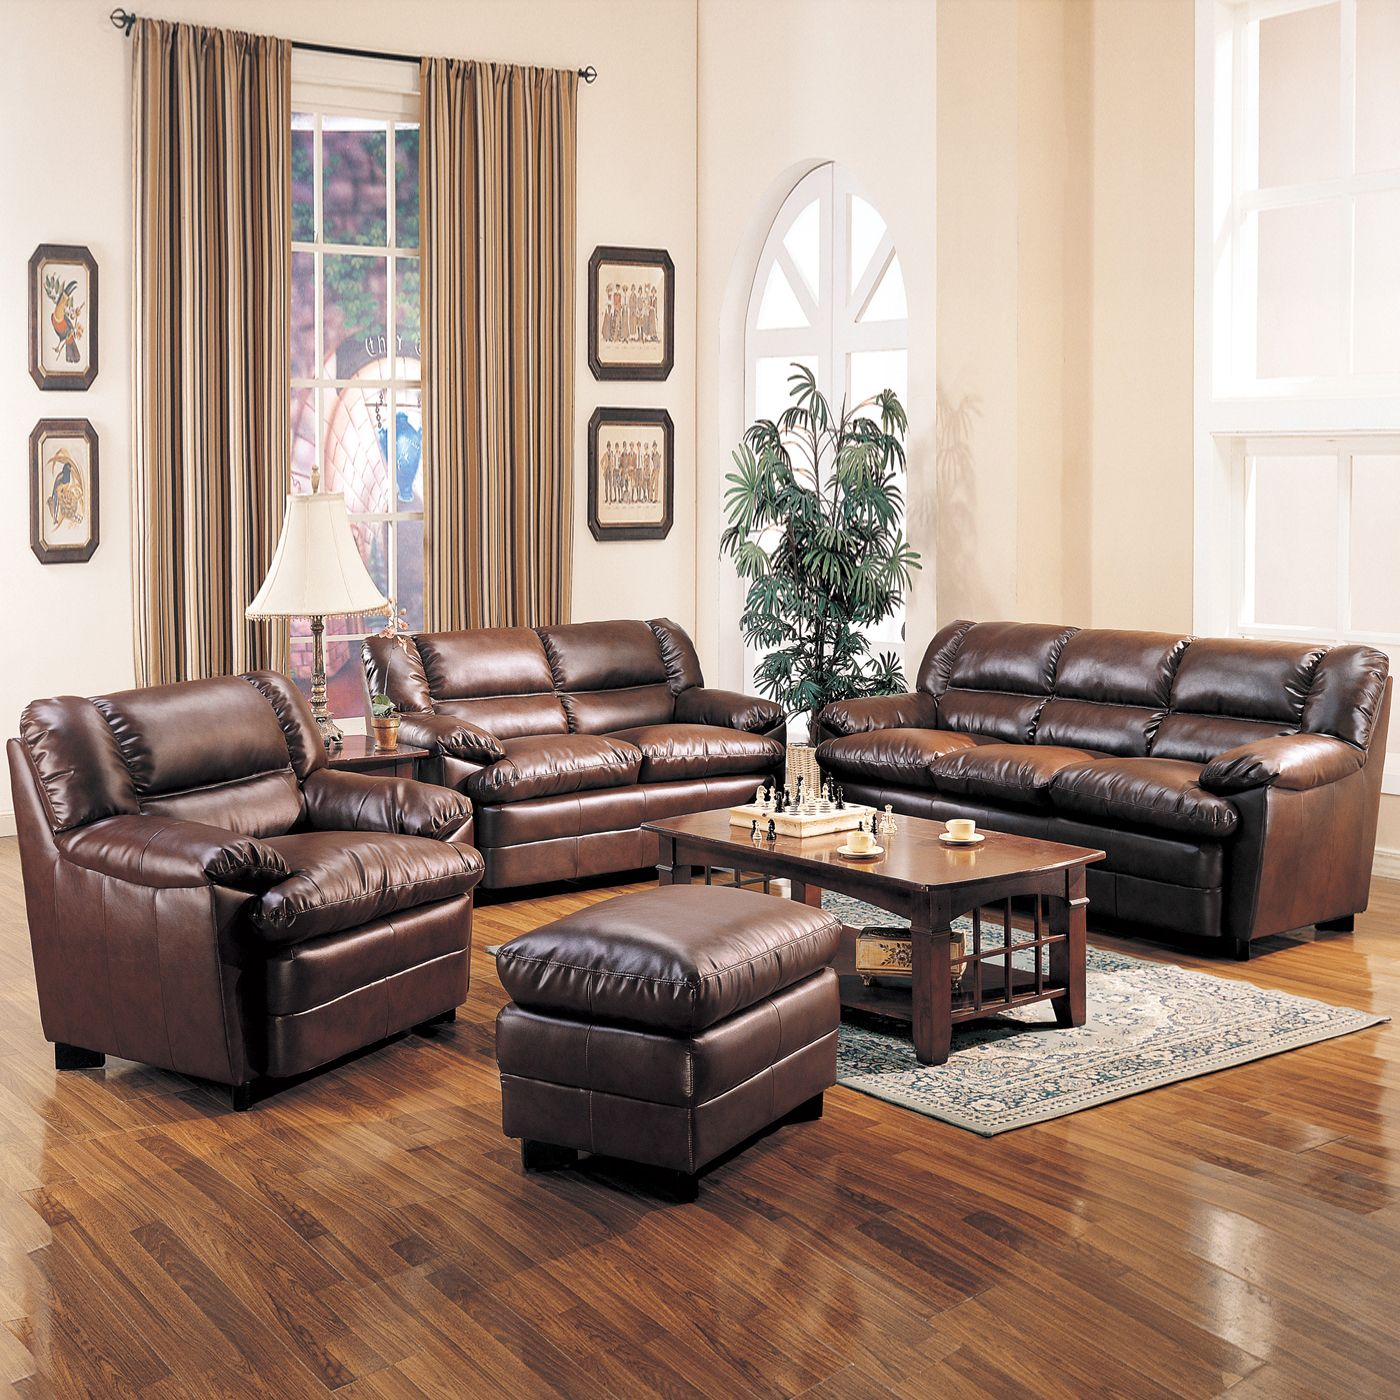 sleeper sectional sofa reclining loveseat black sofas cream living room sets: vintage set up with ...